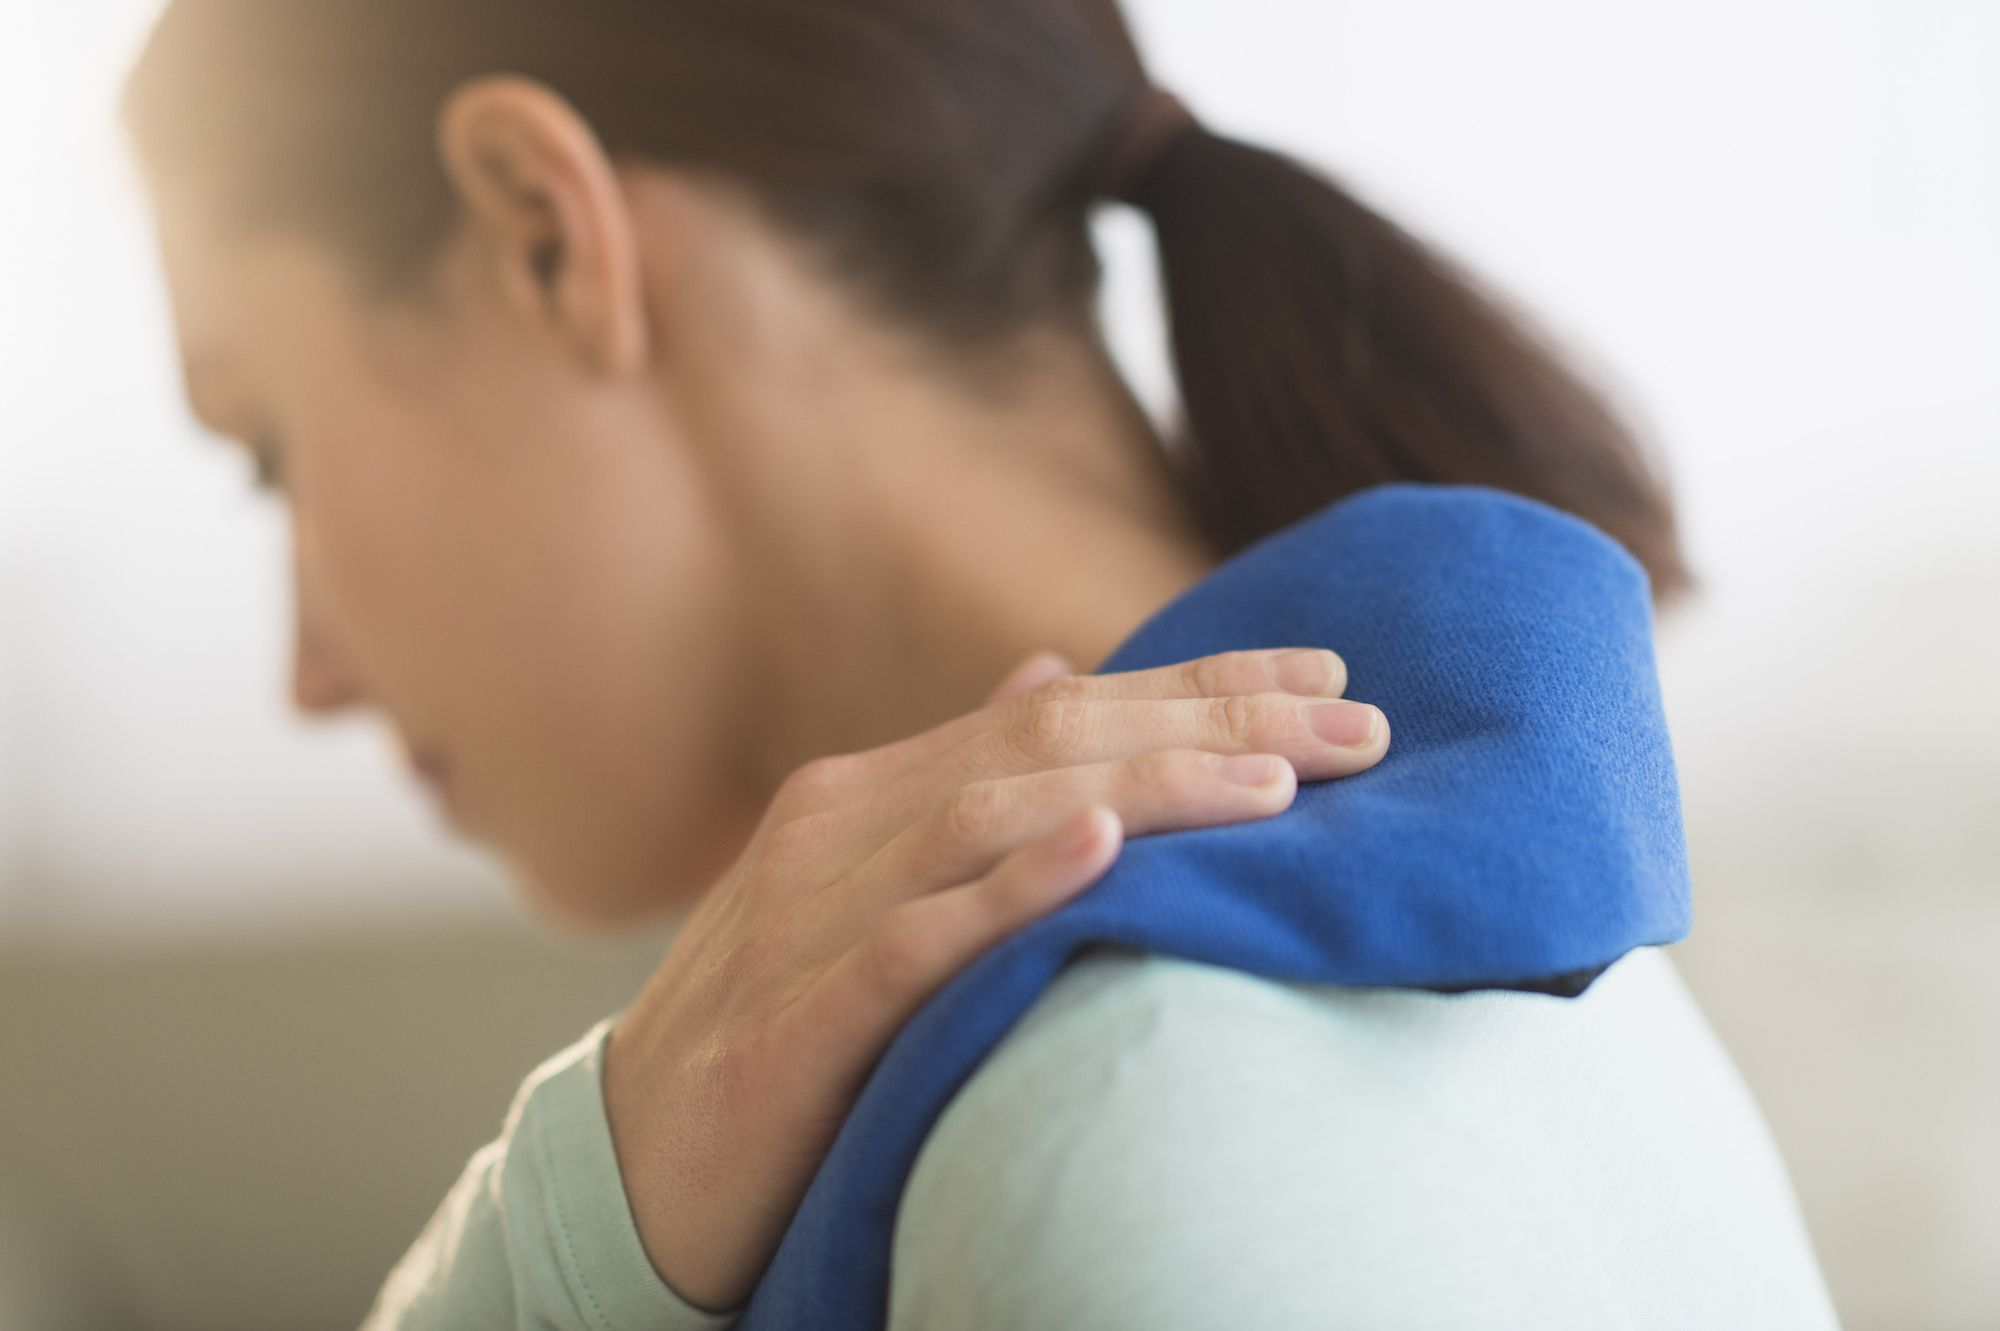 A woman icing her left shoulder